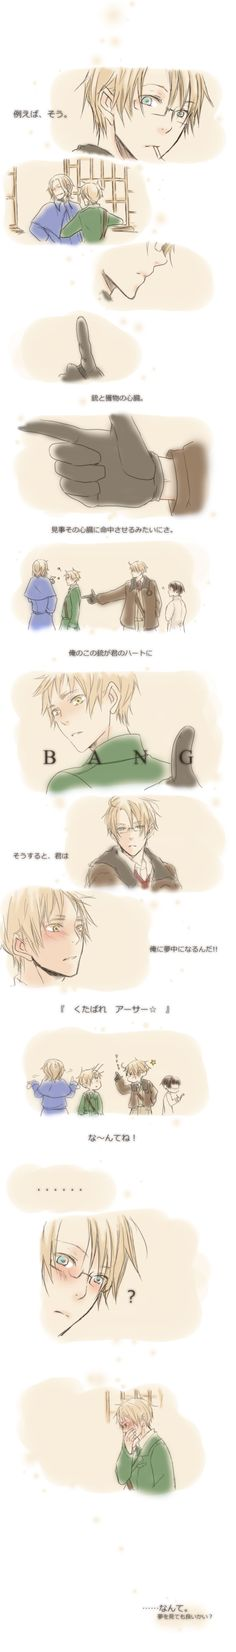 /Axis Powers: Hetalia/#1110383 - Zerochan I wonder what's really going on here.